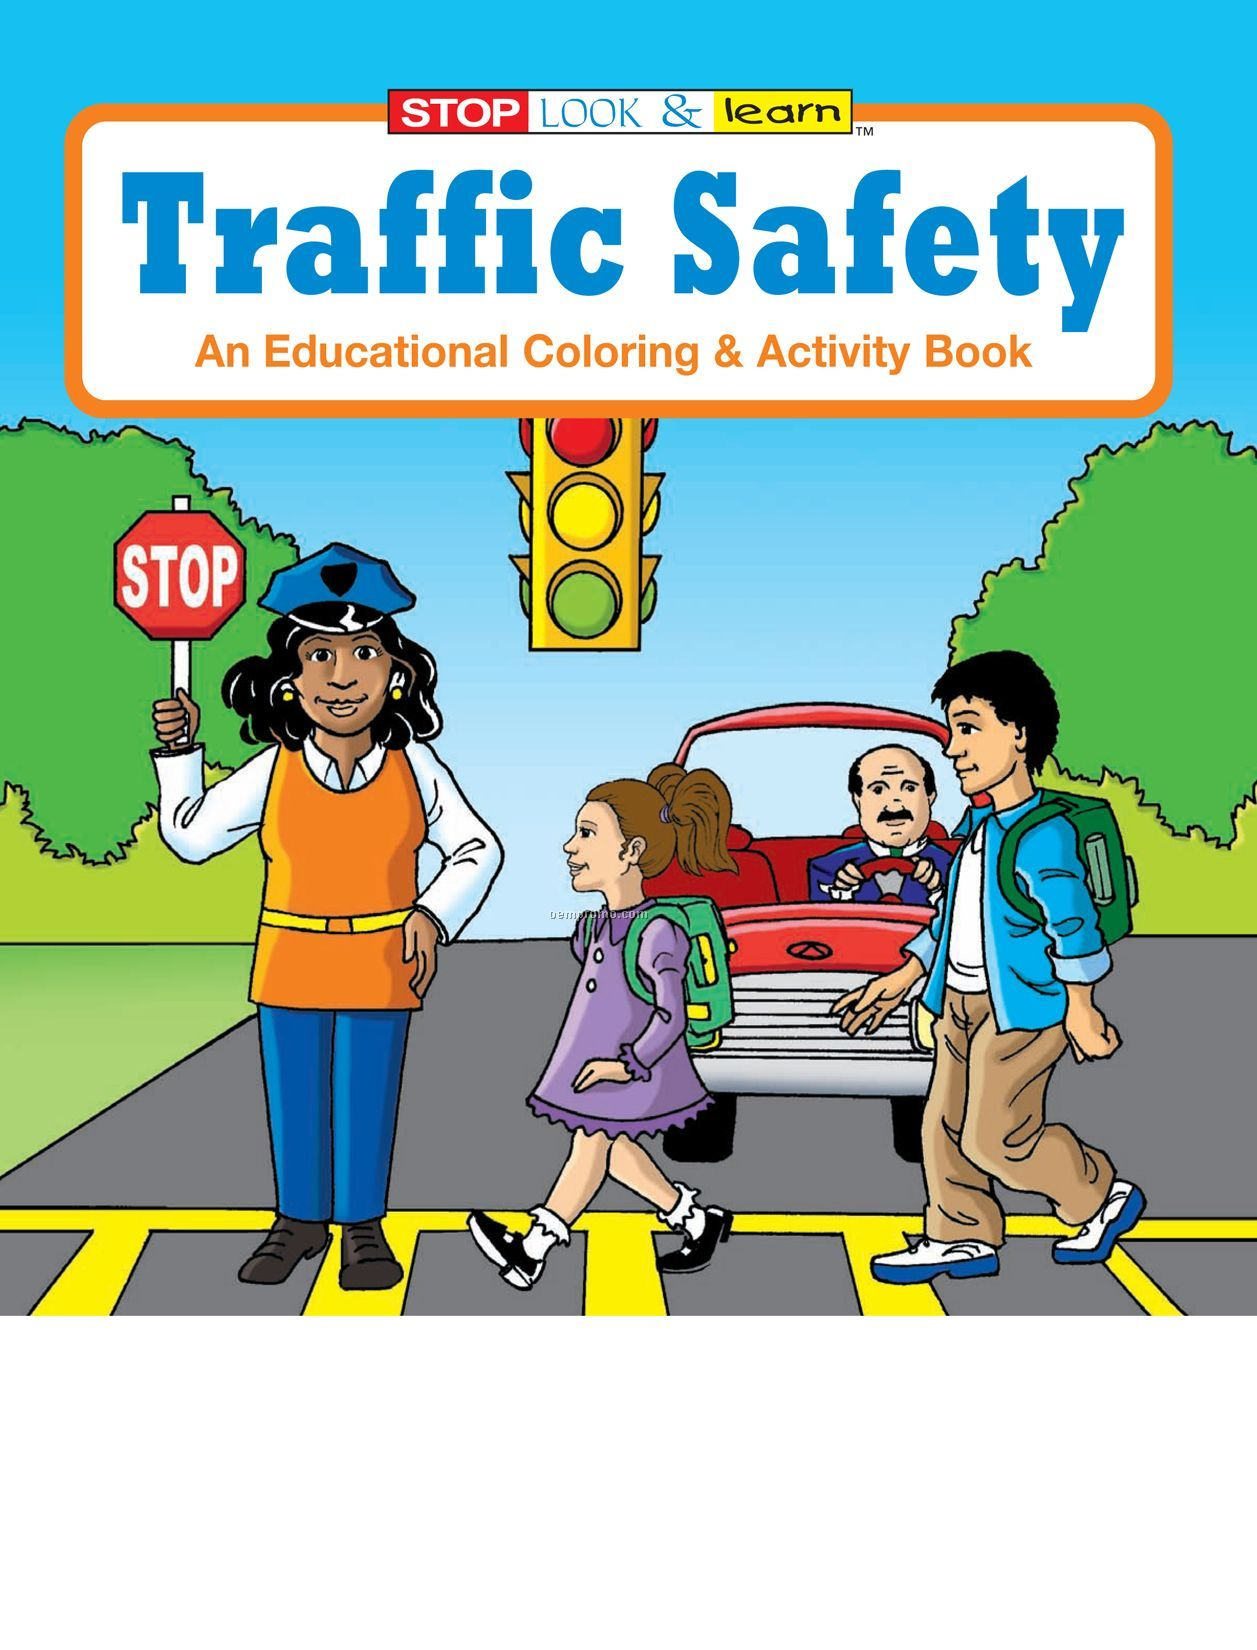 Traffic Safety Colouring Pages page 3